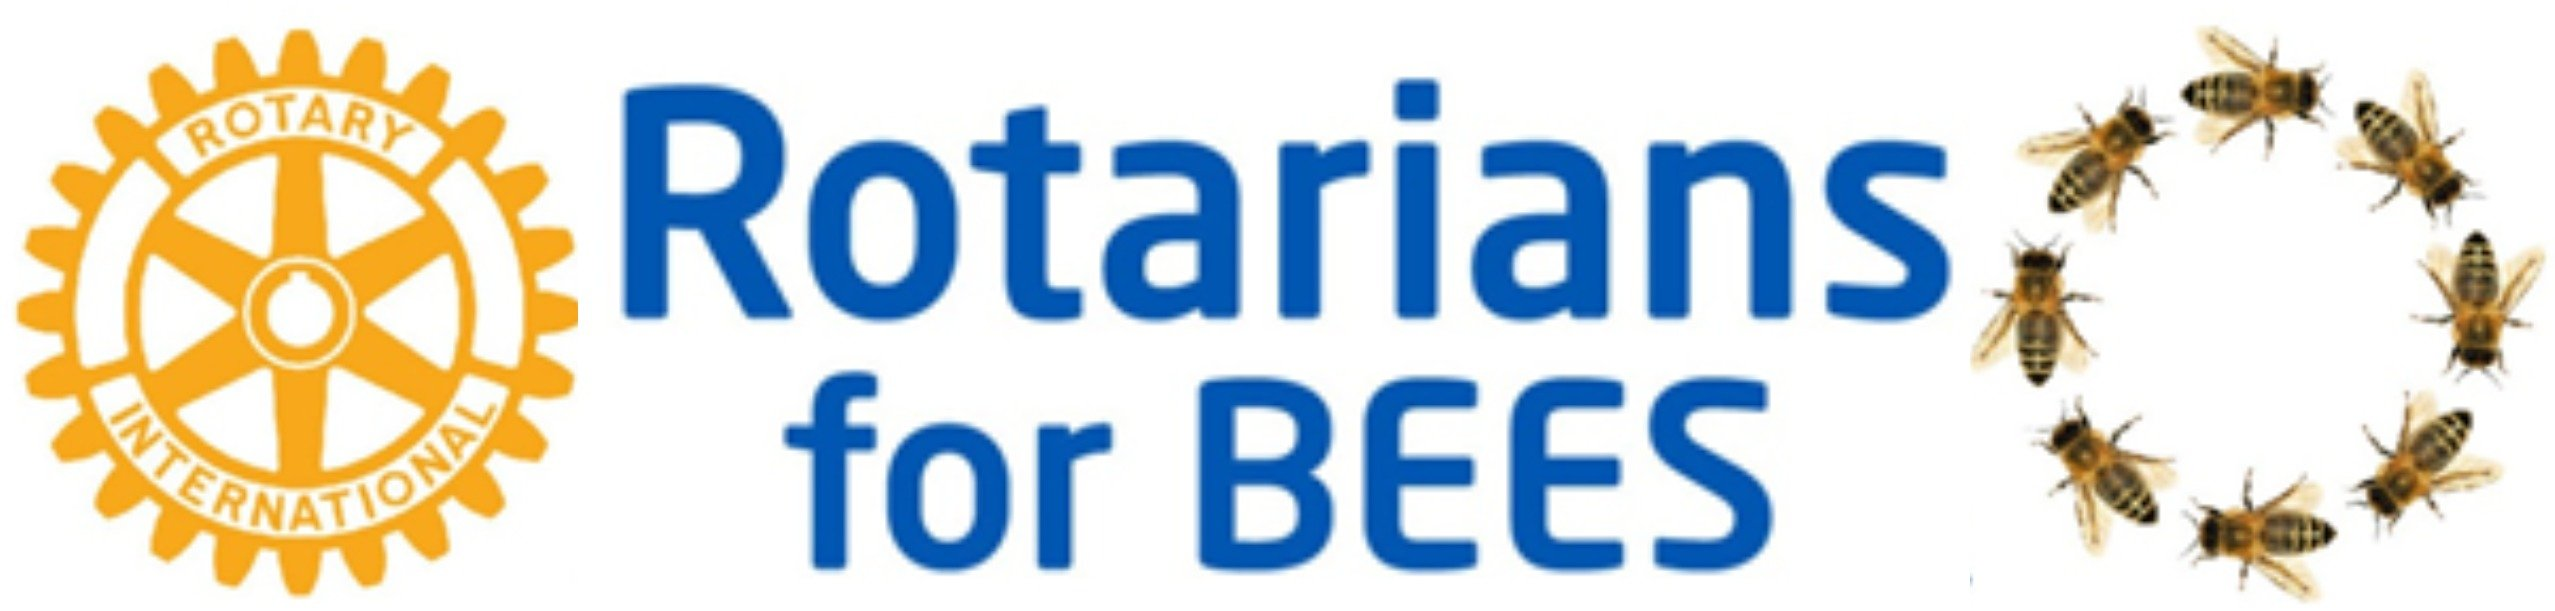 Rotarians For Bees